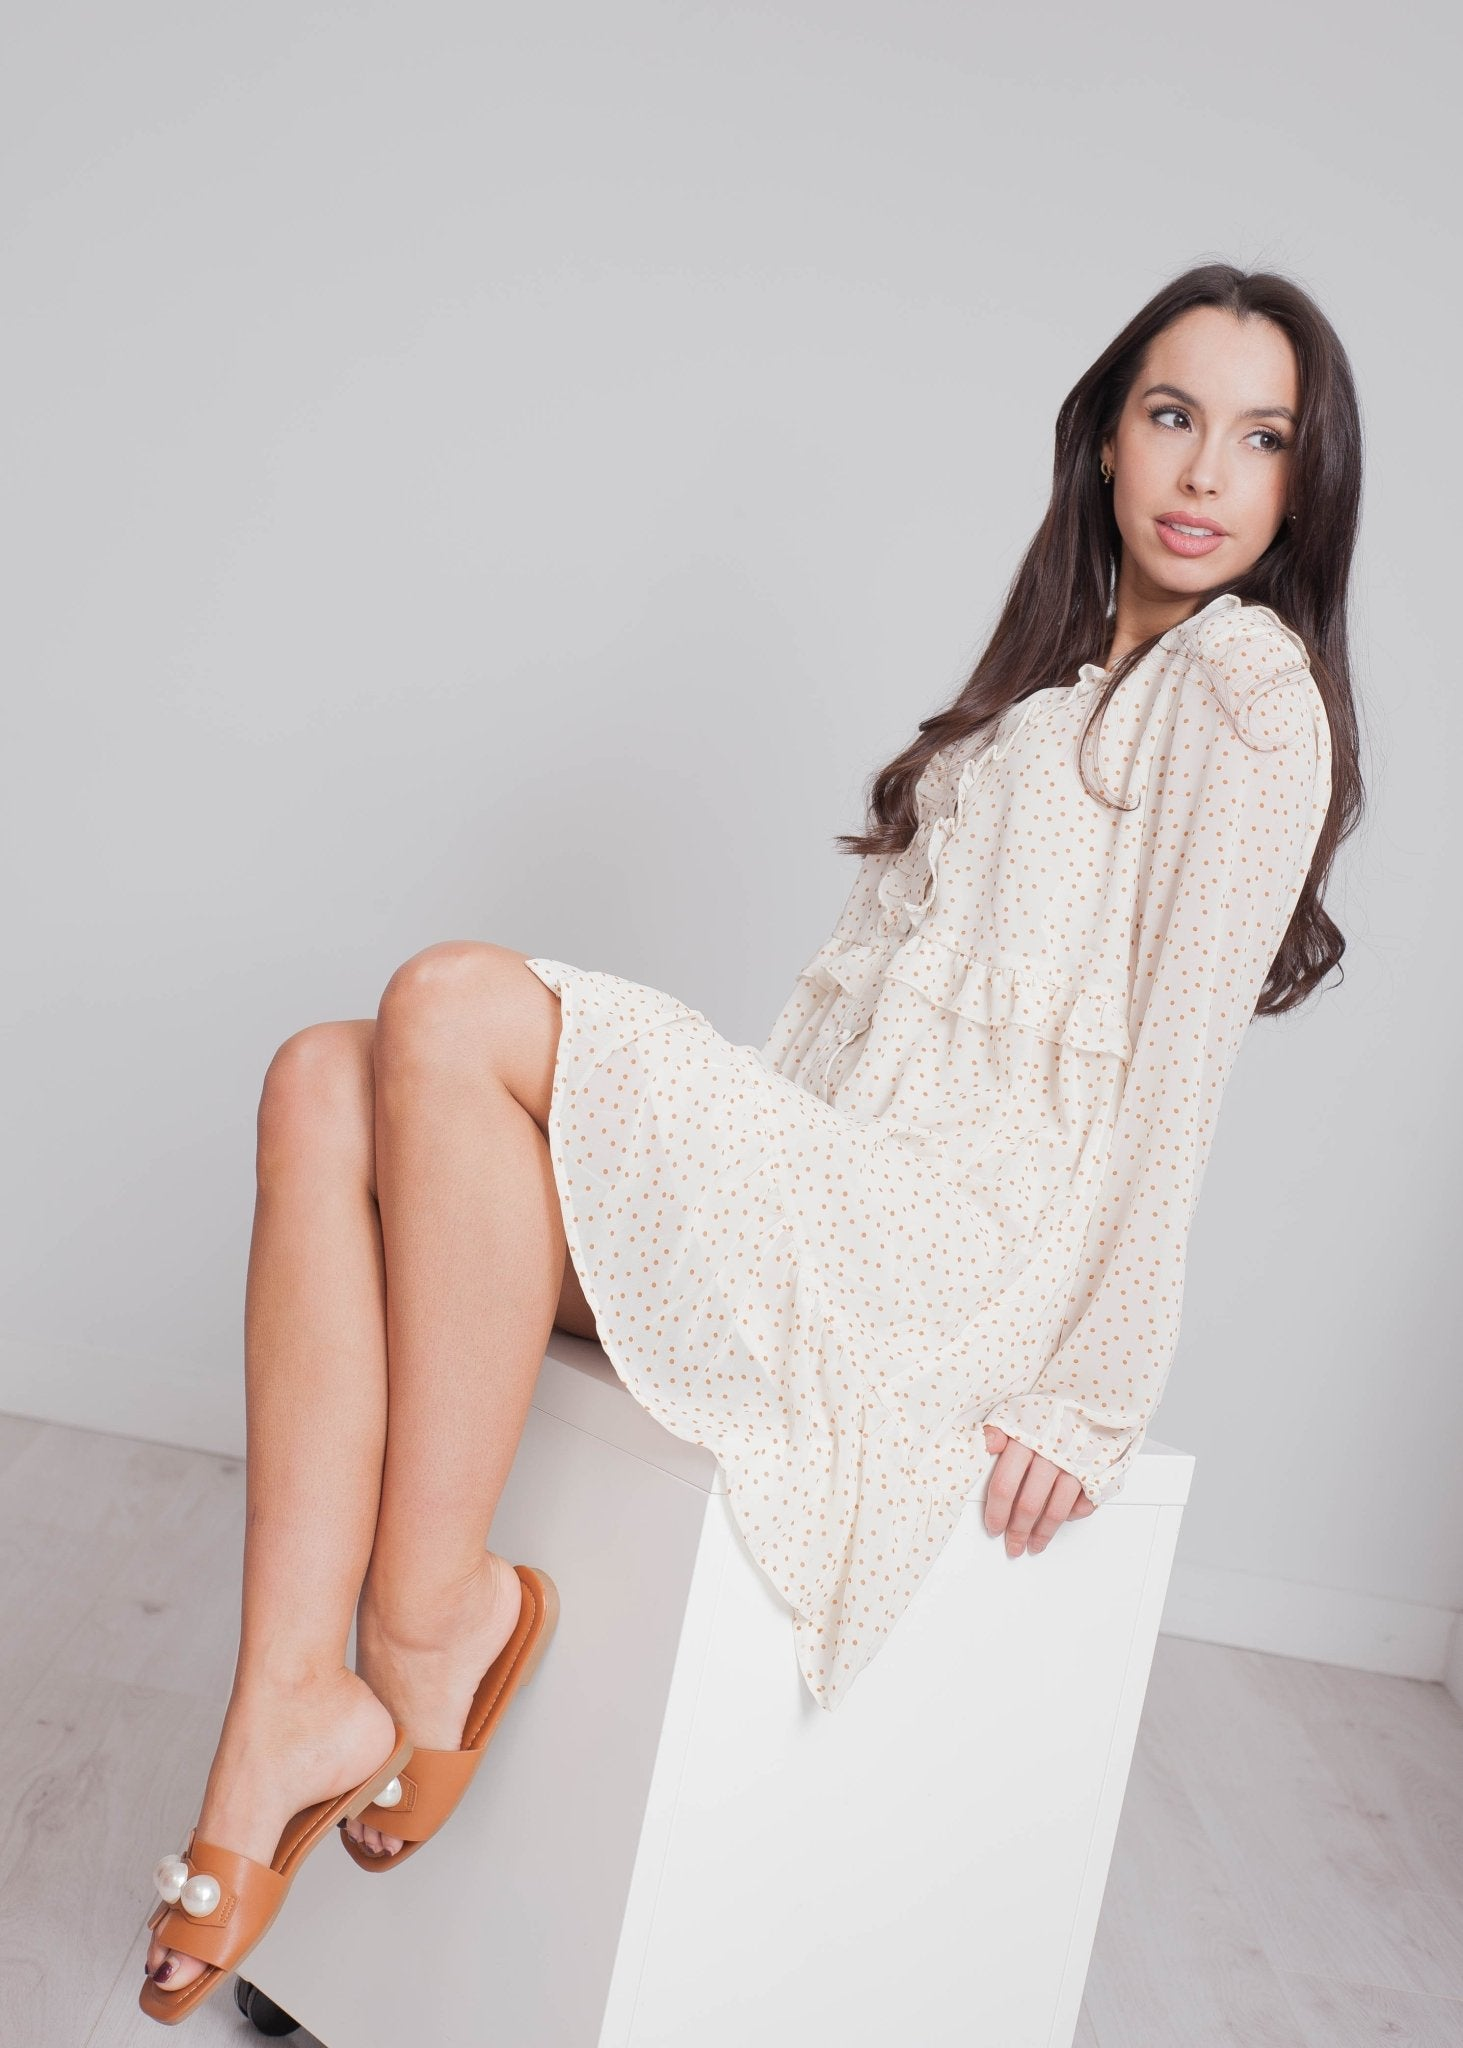 Elsa Polka Dot Mini Dress In Cream - The Walk in Wardrobe